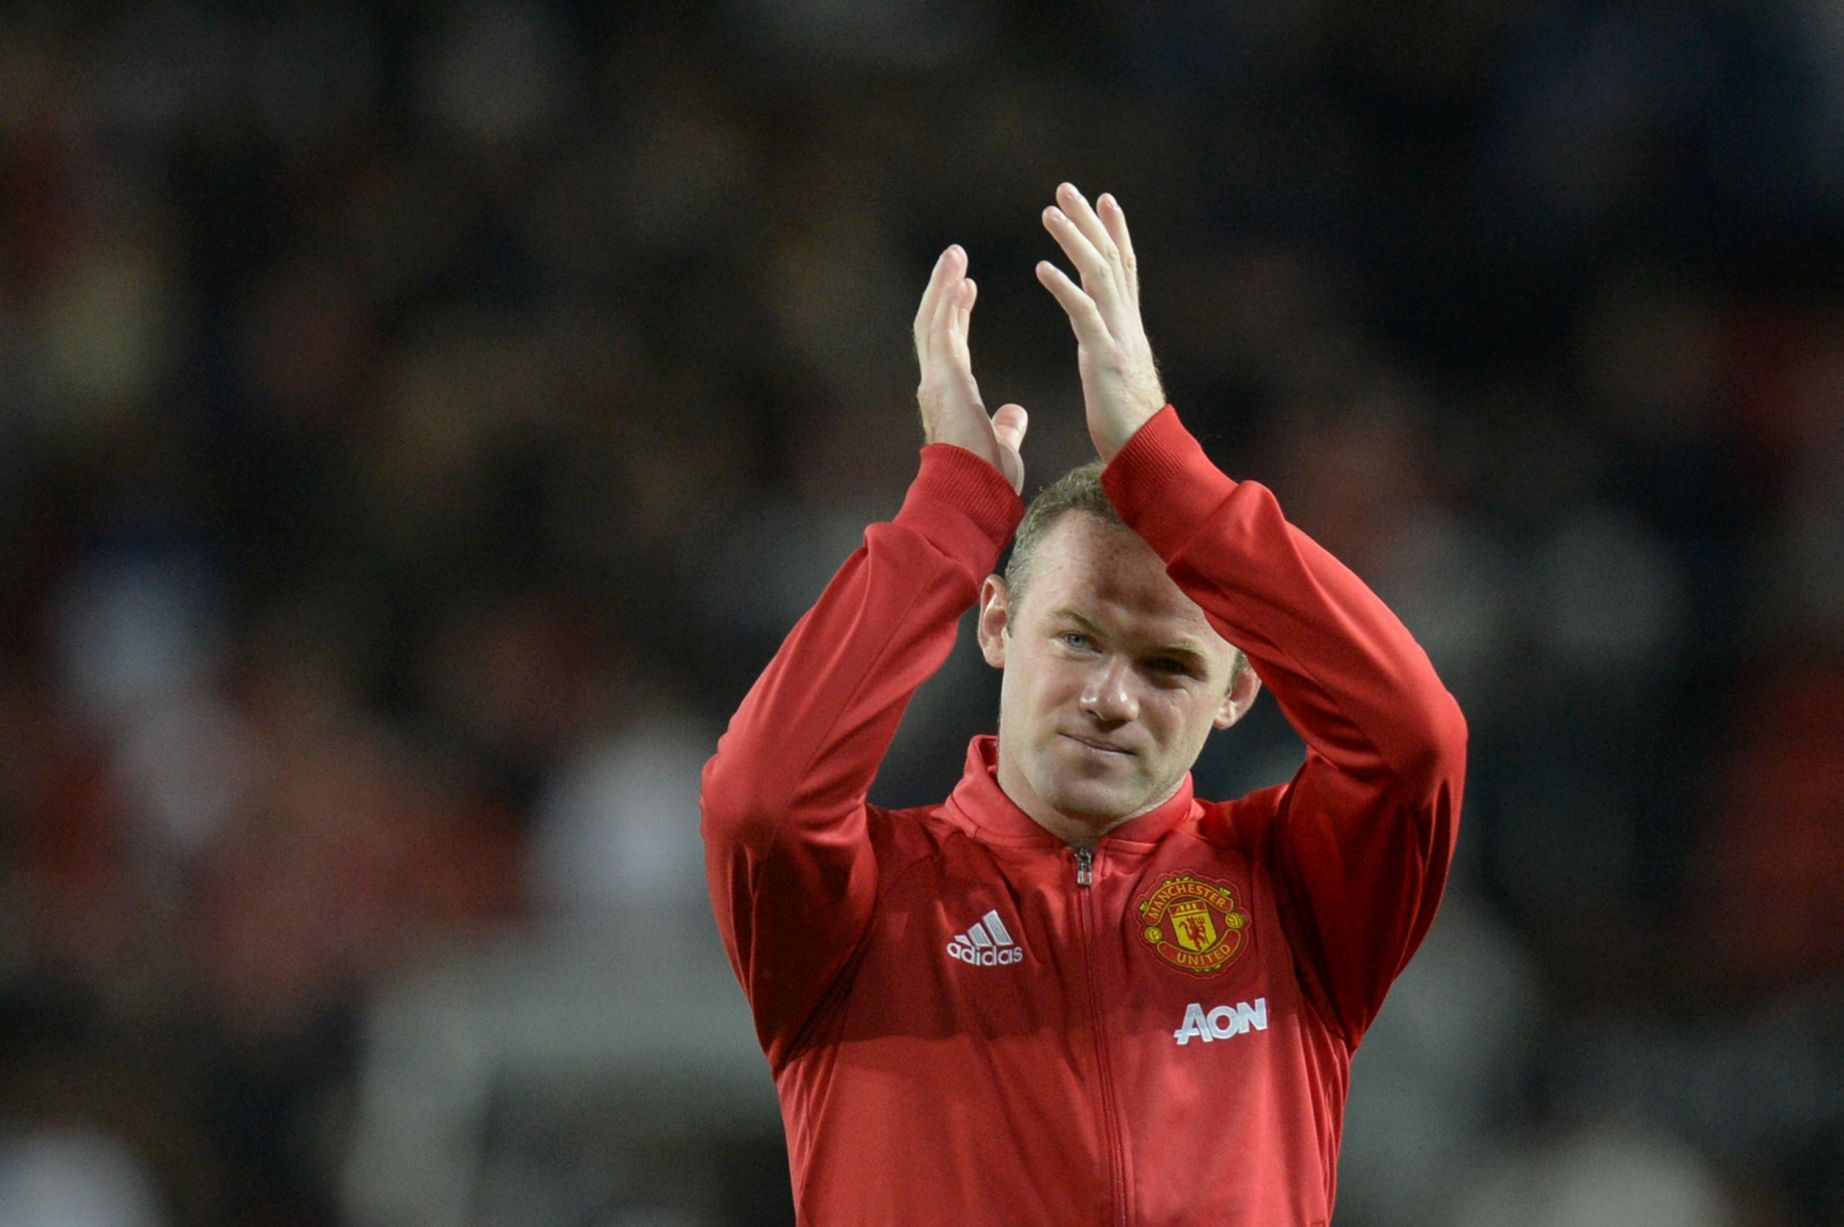 Wayne Rooney applauds the fans at the end of the testimonial